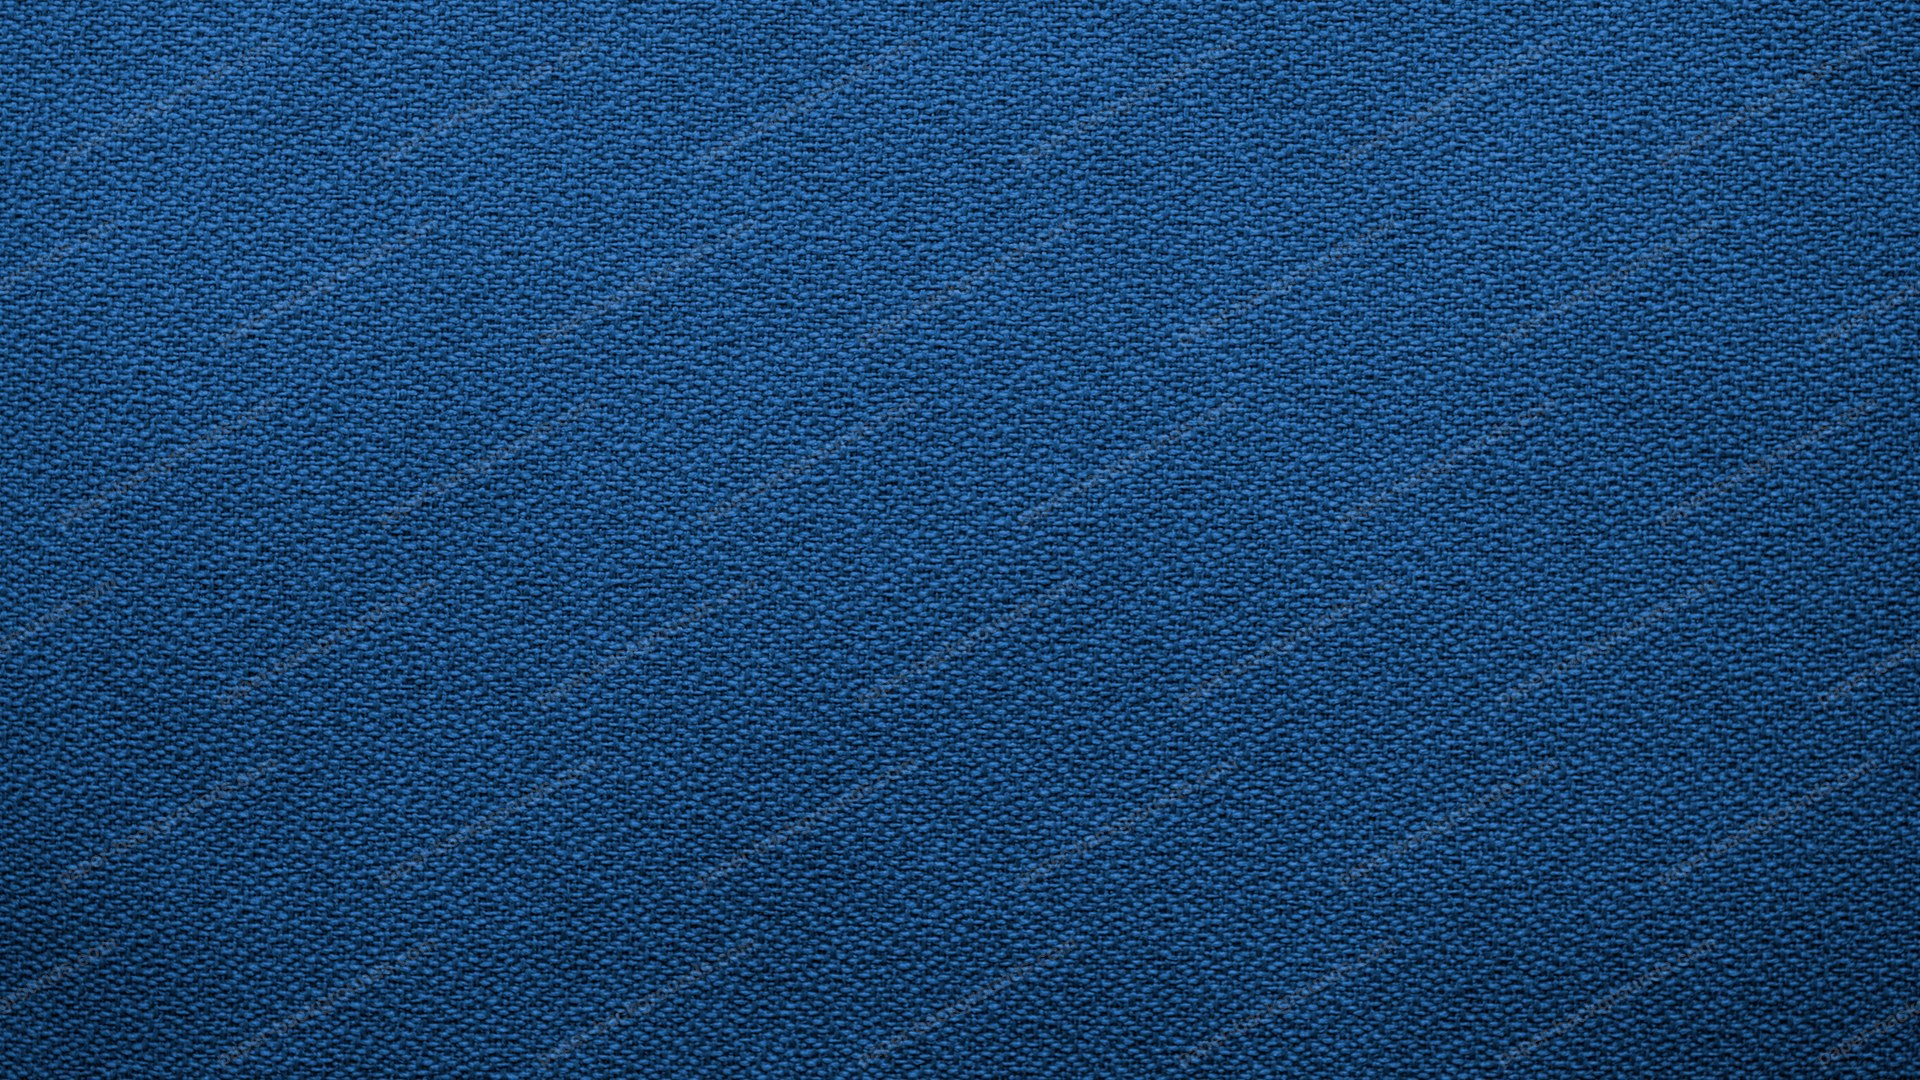 Blue Canvas Fabric Texture HD 1920 x 1080p